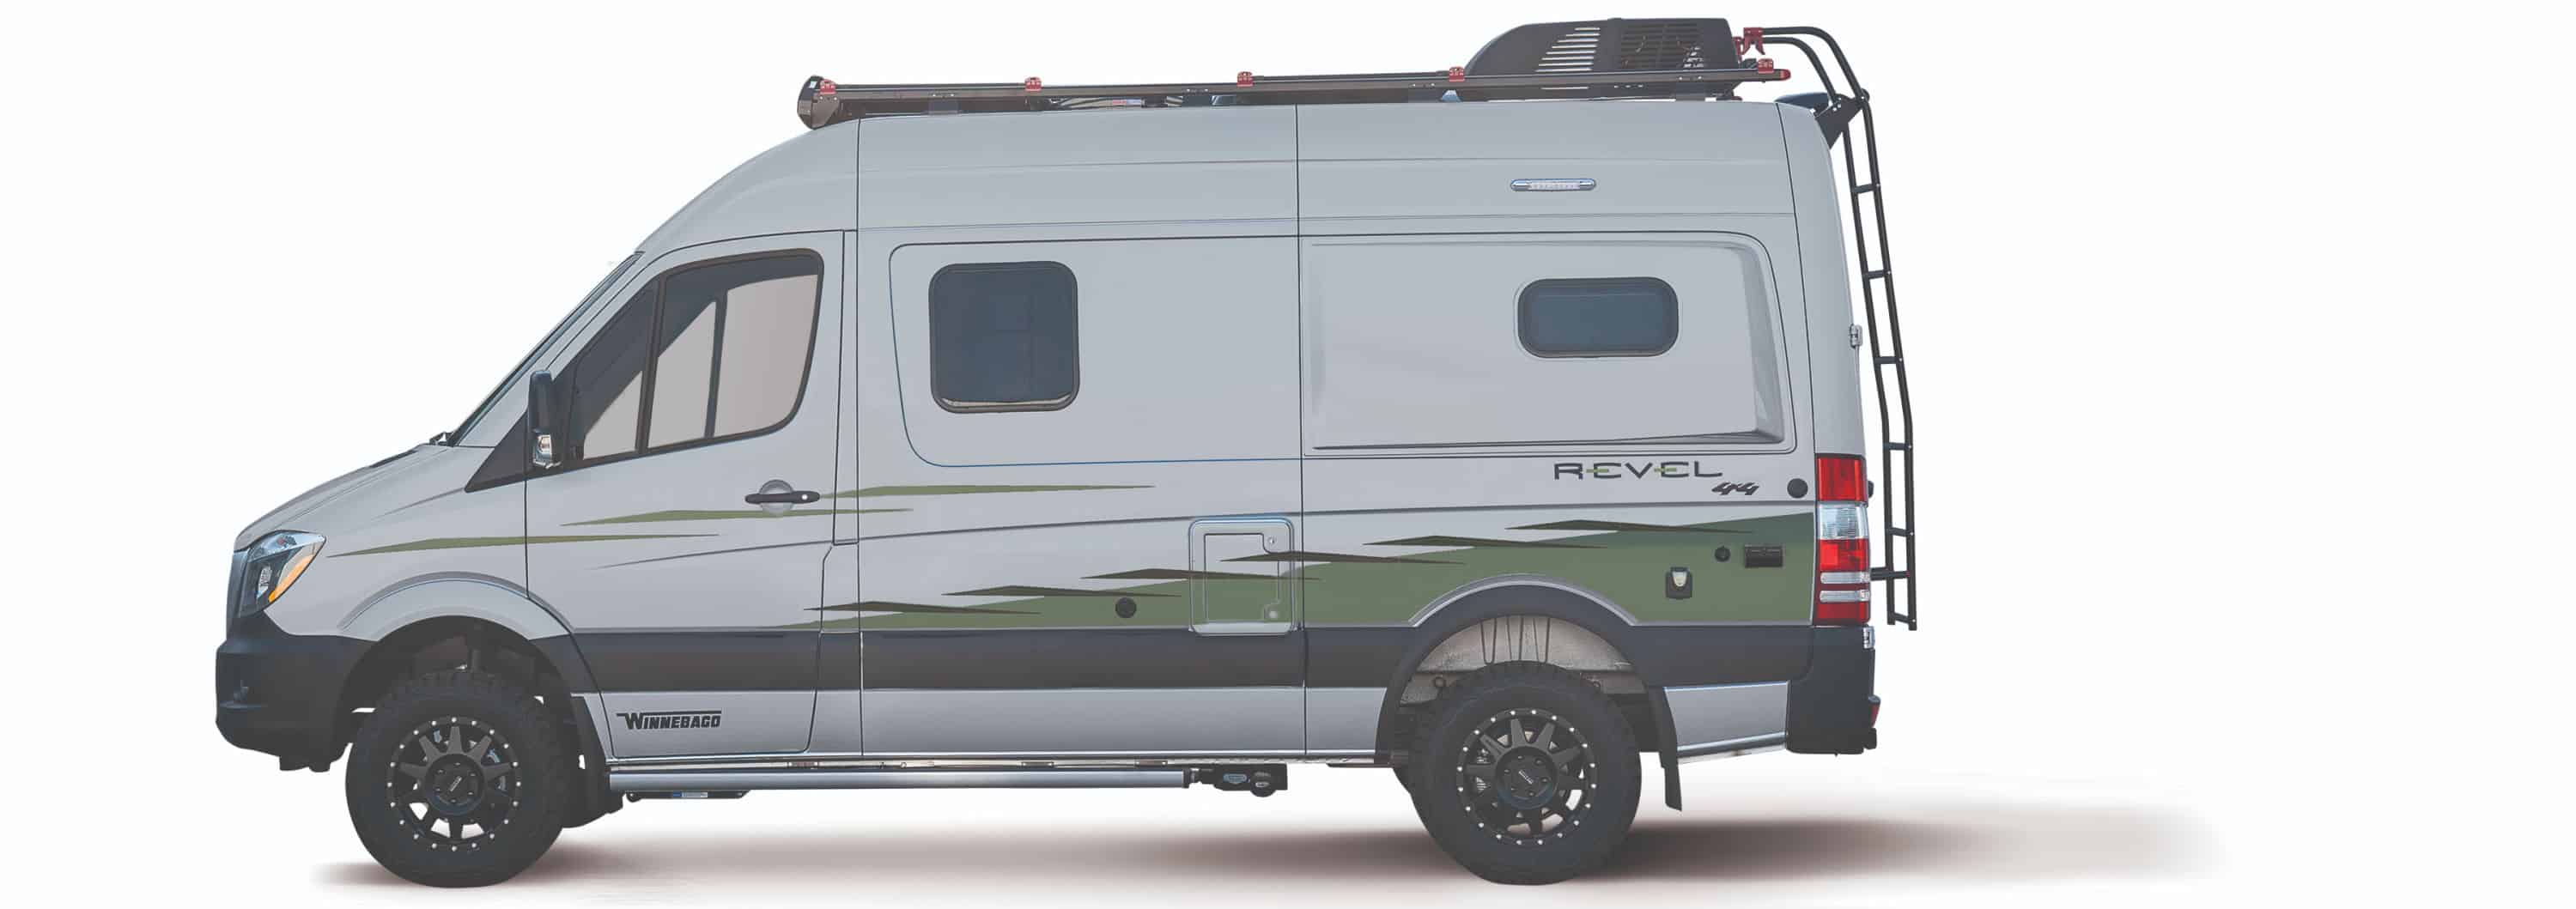 The Winnebago Revel small RV